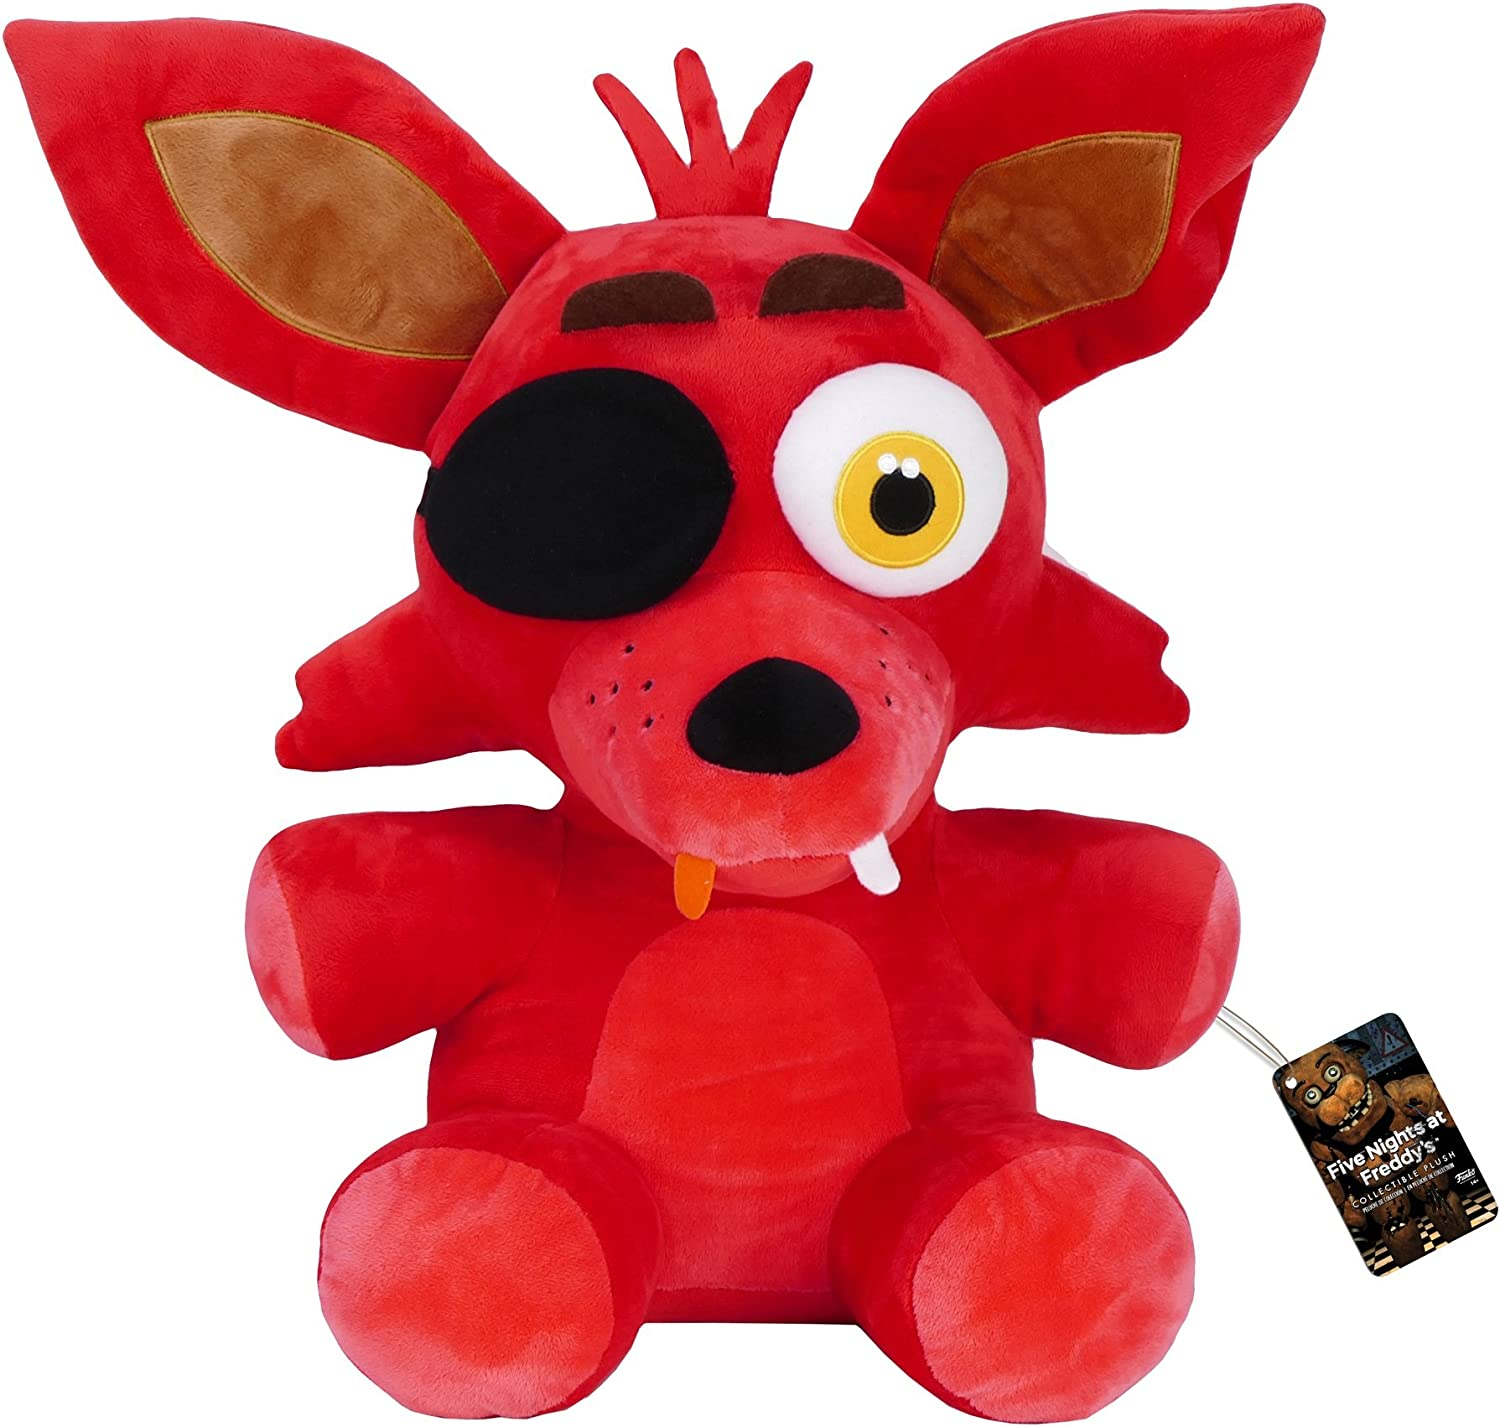 Show Me Pictures Of Foxy photo 2